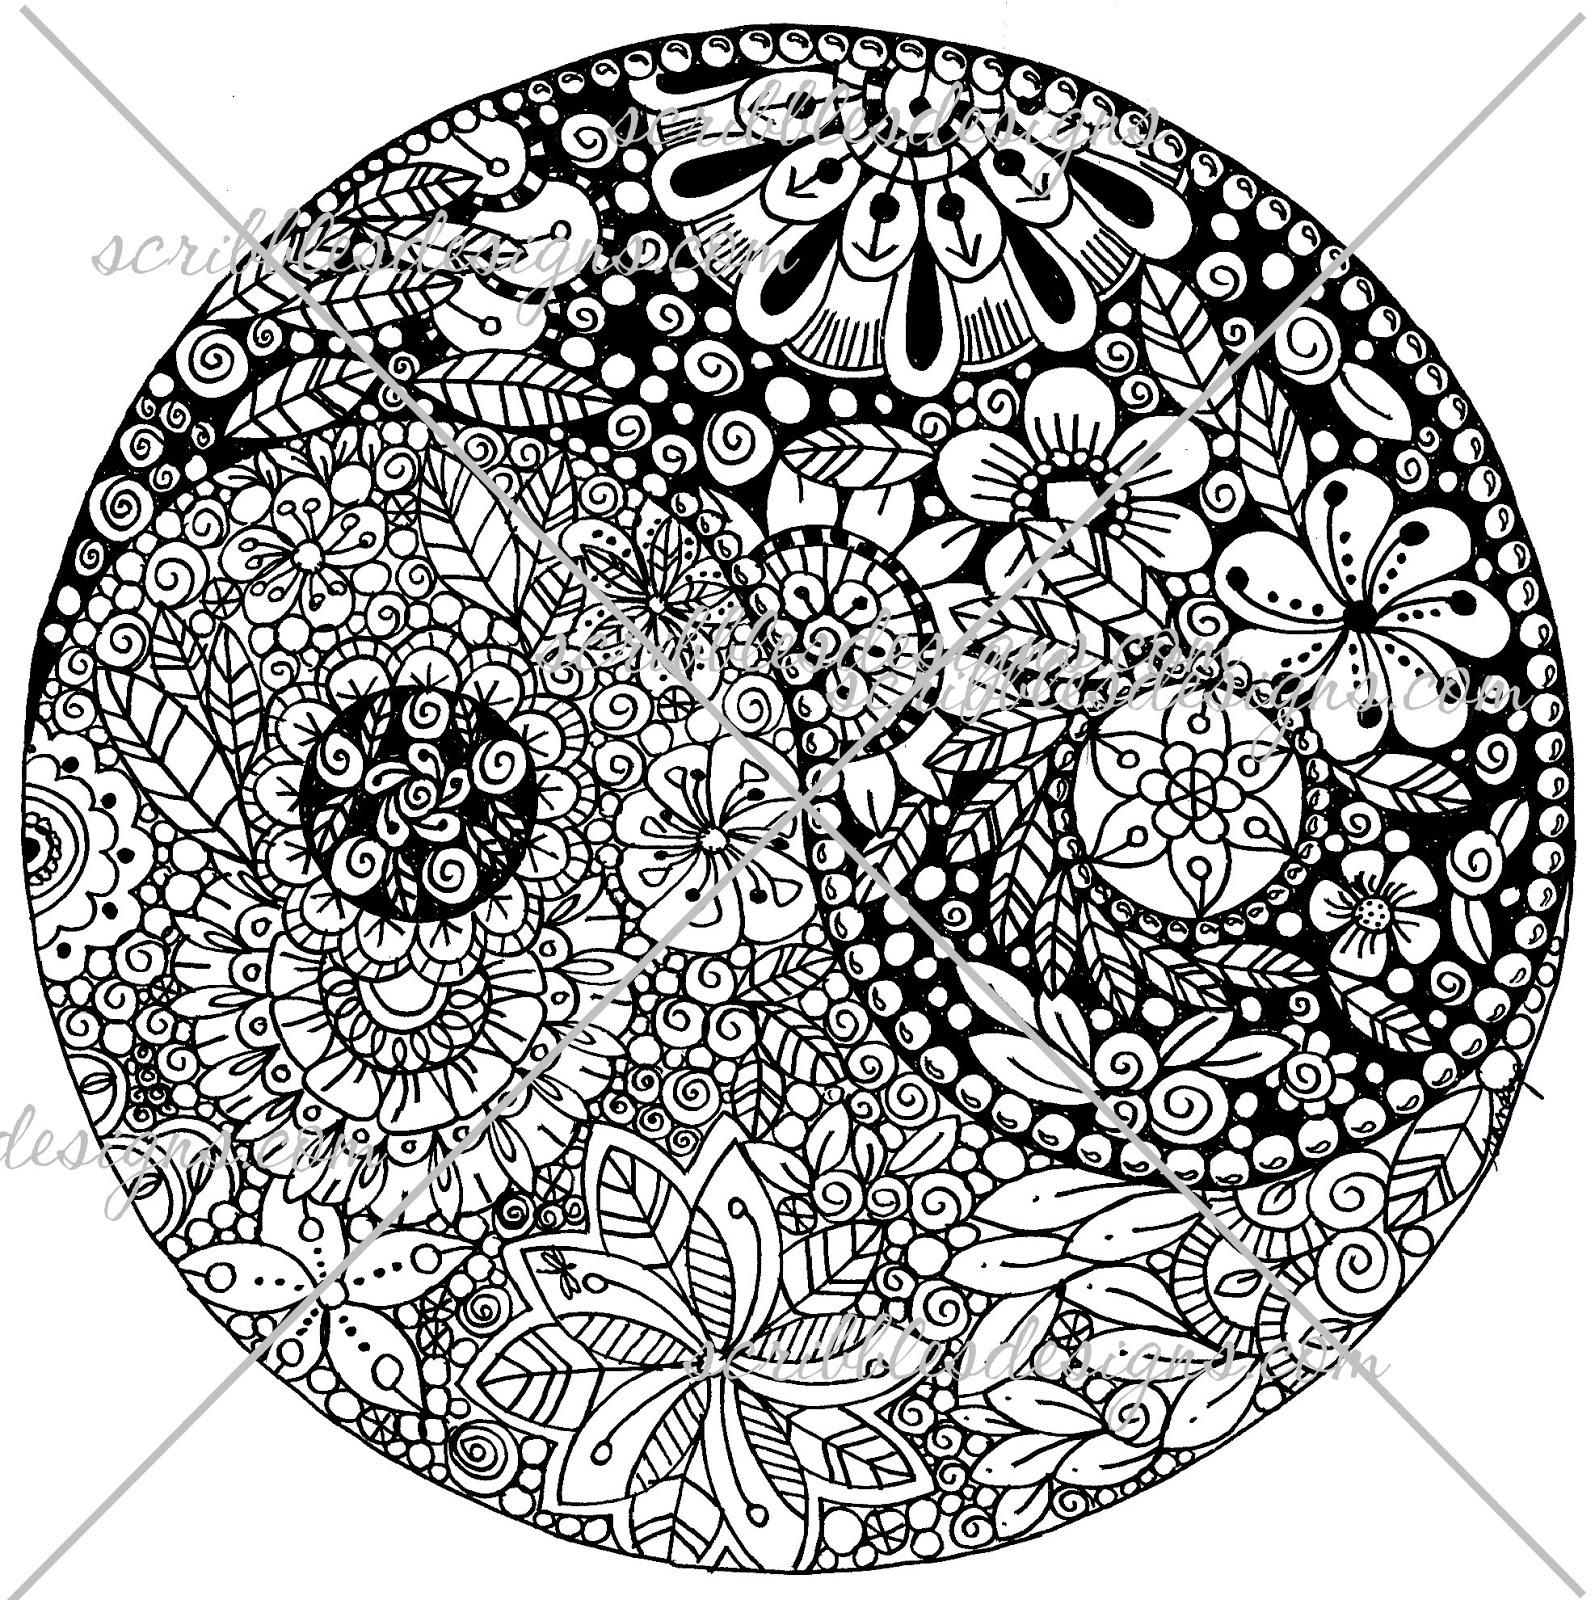 Coloring Pages Yin Yang : Free coloring pages of ying yang